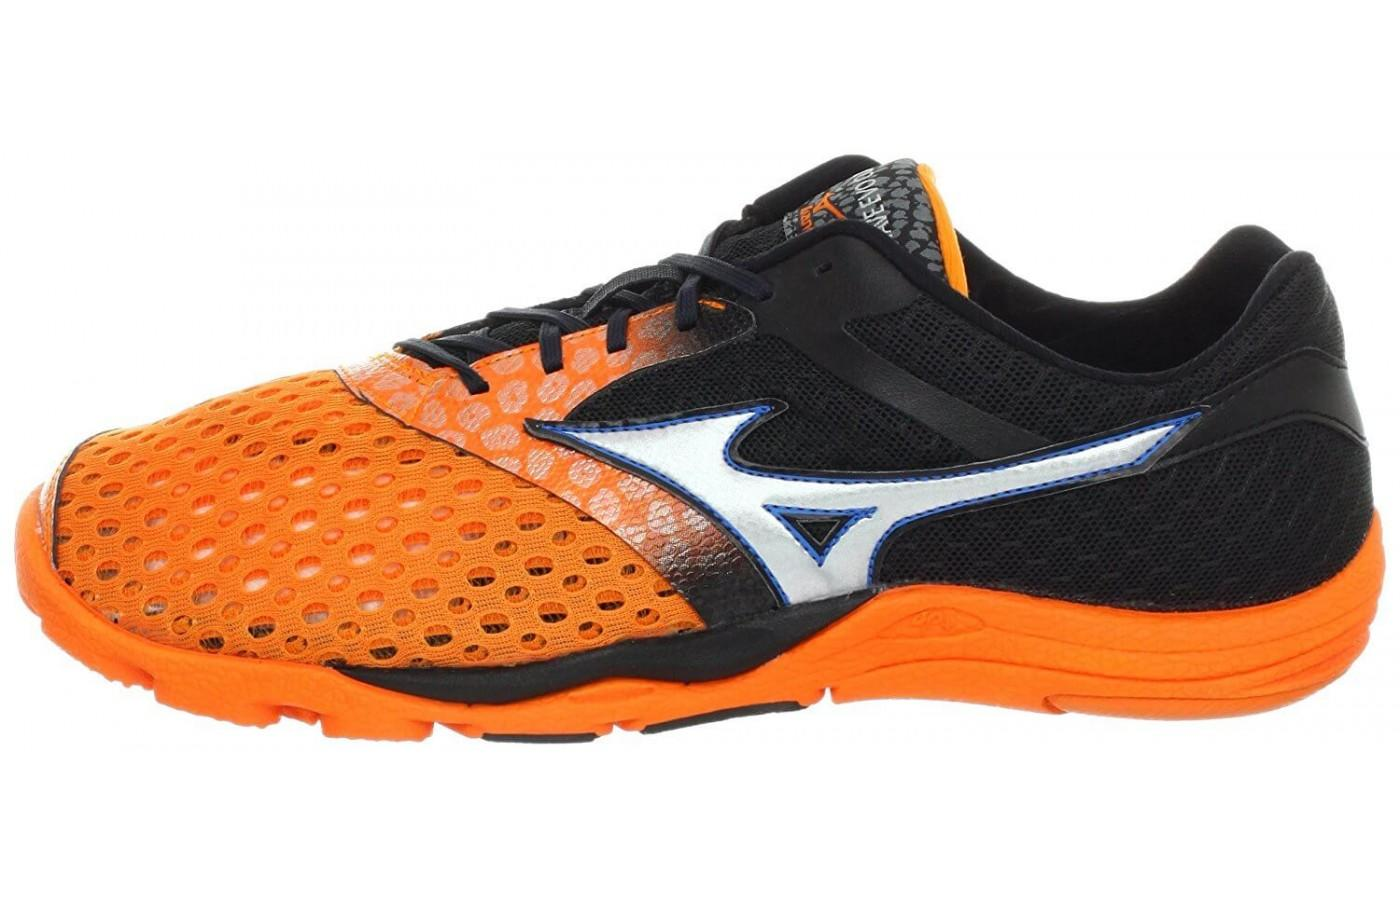 a good look at the side of the Mizuno Wave Evo Cursoris